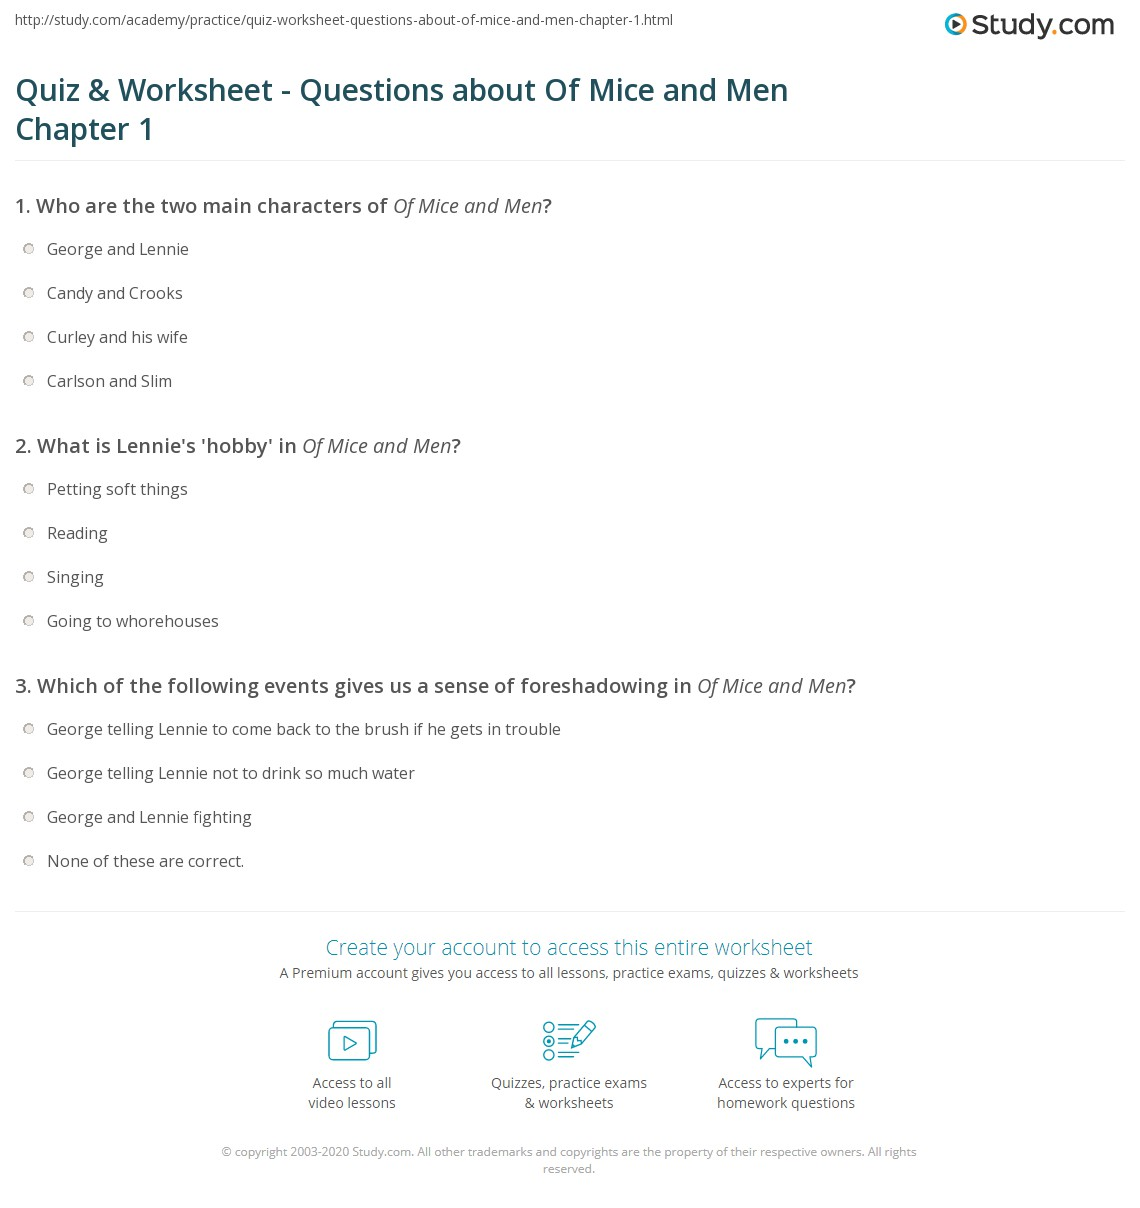 quiz worksheet questions about of mice and men chapter  what is lennie s hobby in of mice and men